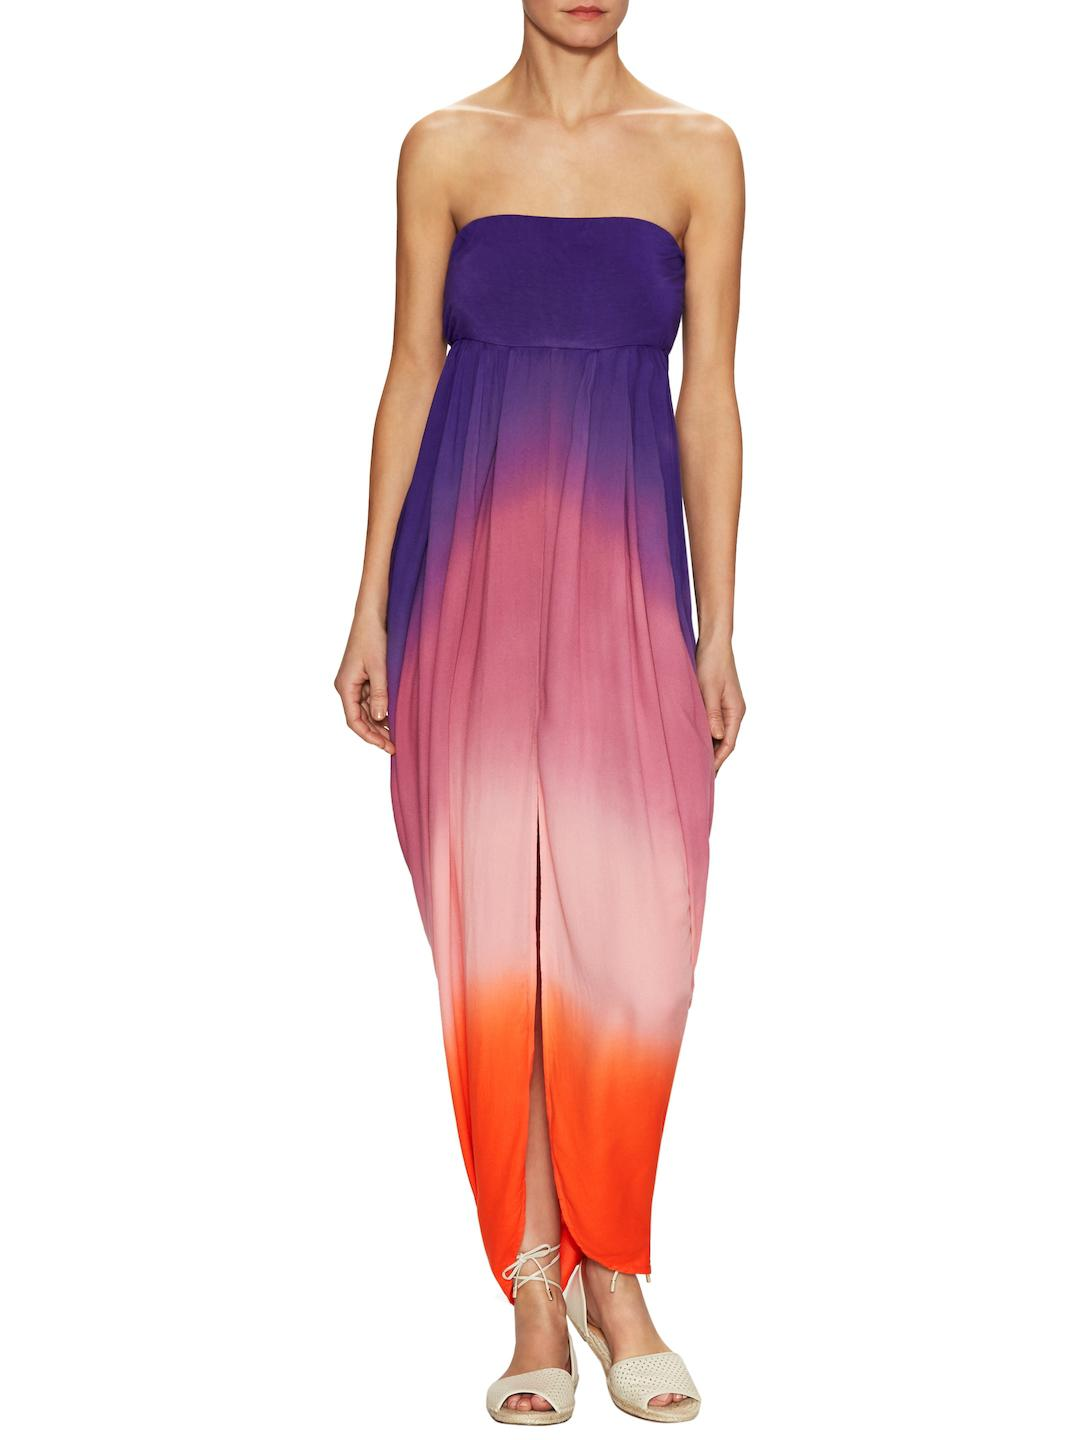 ee6a5b09b865b Young Fabulous & Broke Neve Strapless Ombre Maxi Dress in Purple - Lyst